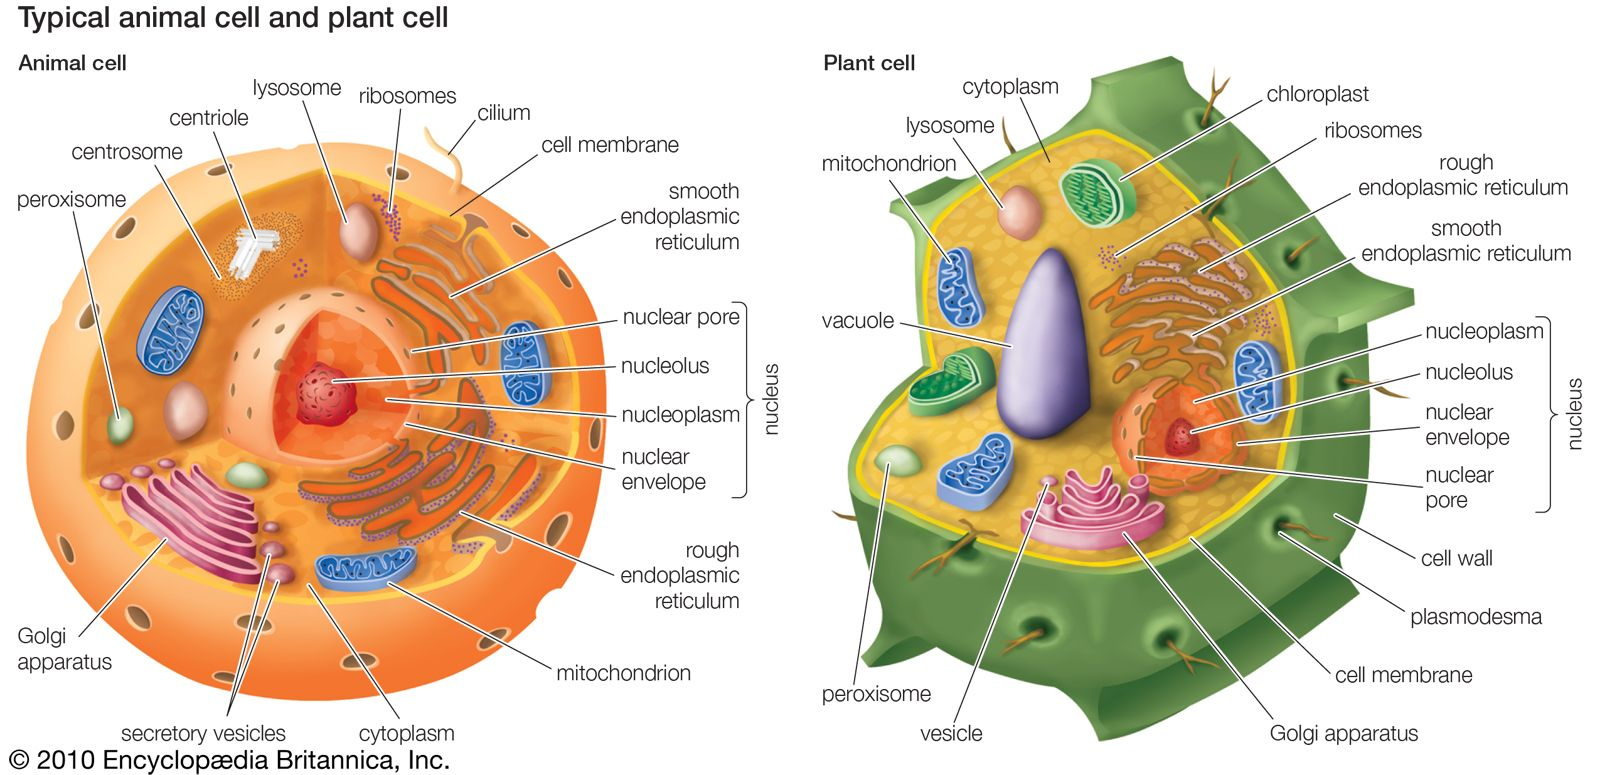 Worksheets Animal And Plant Cells Worksheet 8 best ireland images on pinterest animal cell school projects and science projects